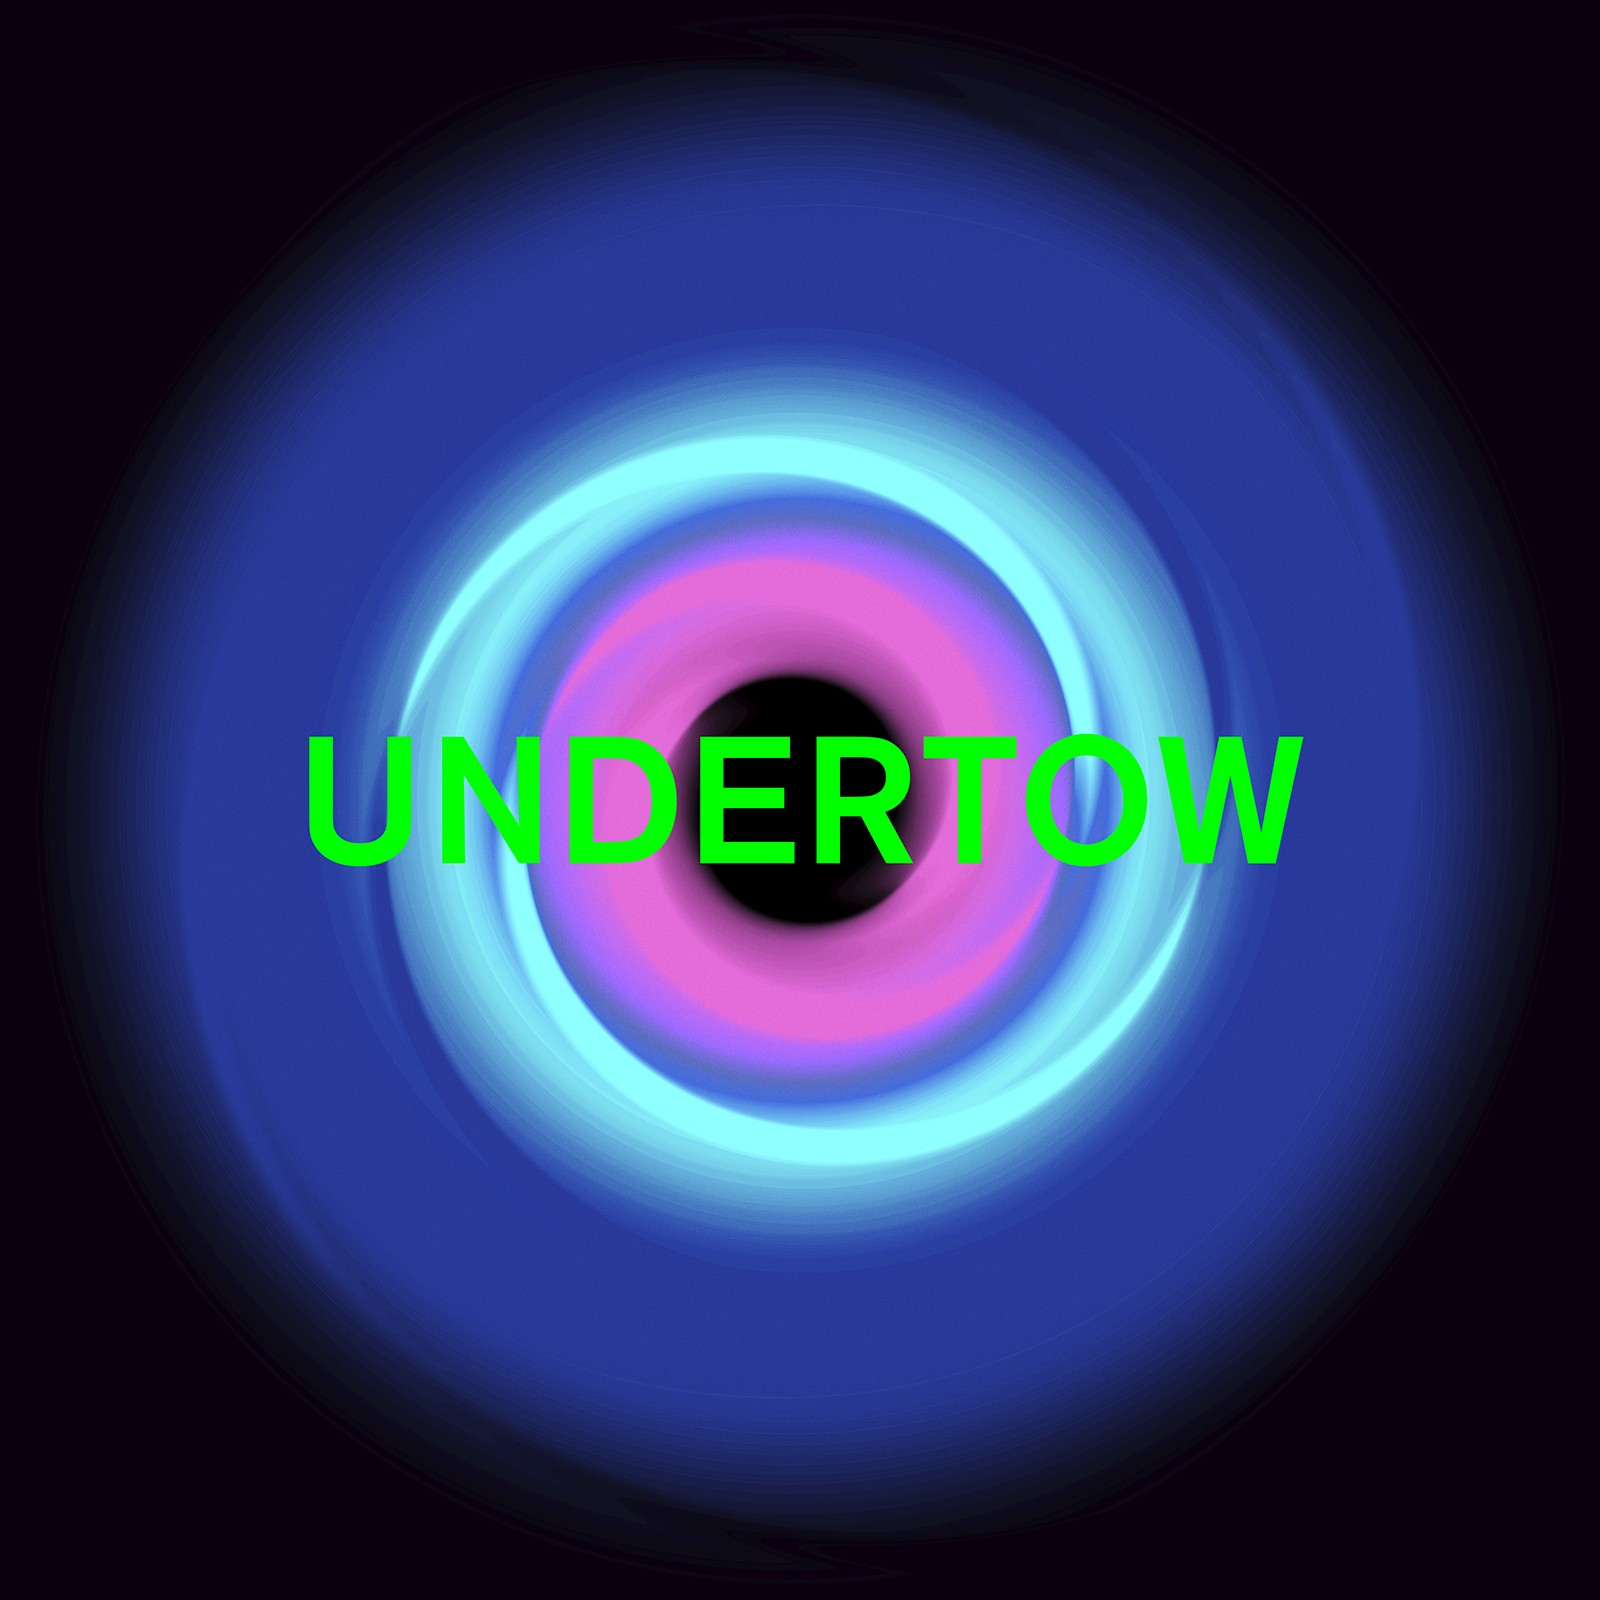 Undertow on vinyl